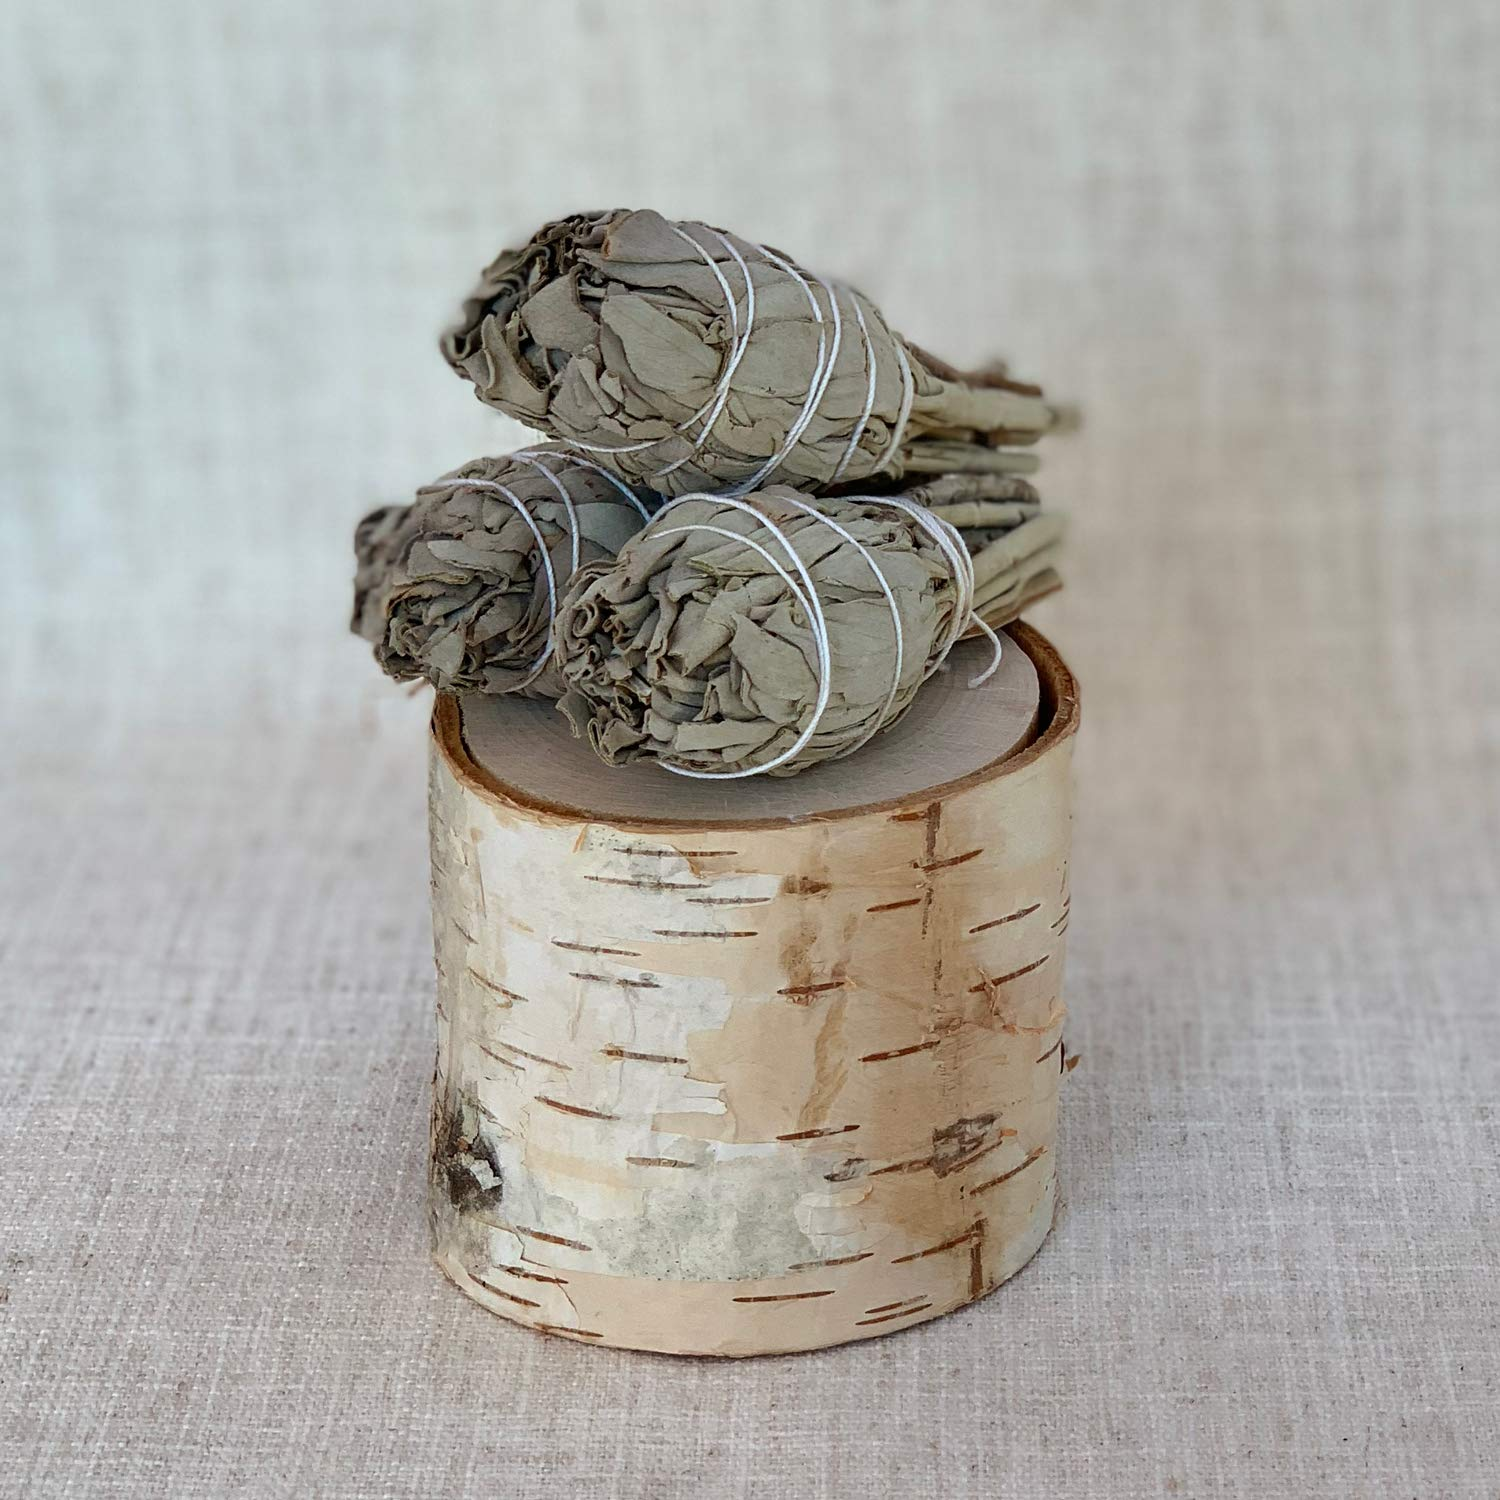 SMUDGE REFILL KIT STICKS - Chakra Balancing, White Sage & Palo Santo, for Healing Incense, Purifying, Protection, Spiritual Cleansing, Good Luck, Prosperity, Home Blessing and Meditation Stress Relief by My Lumina (Image #3)